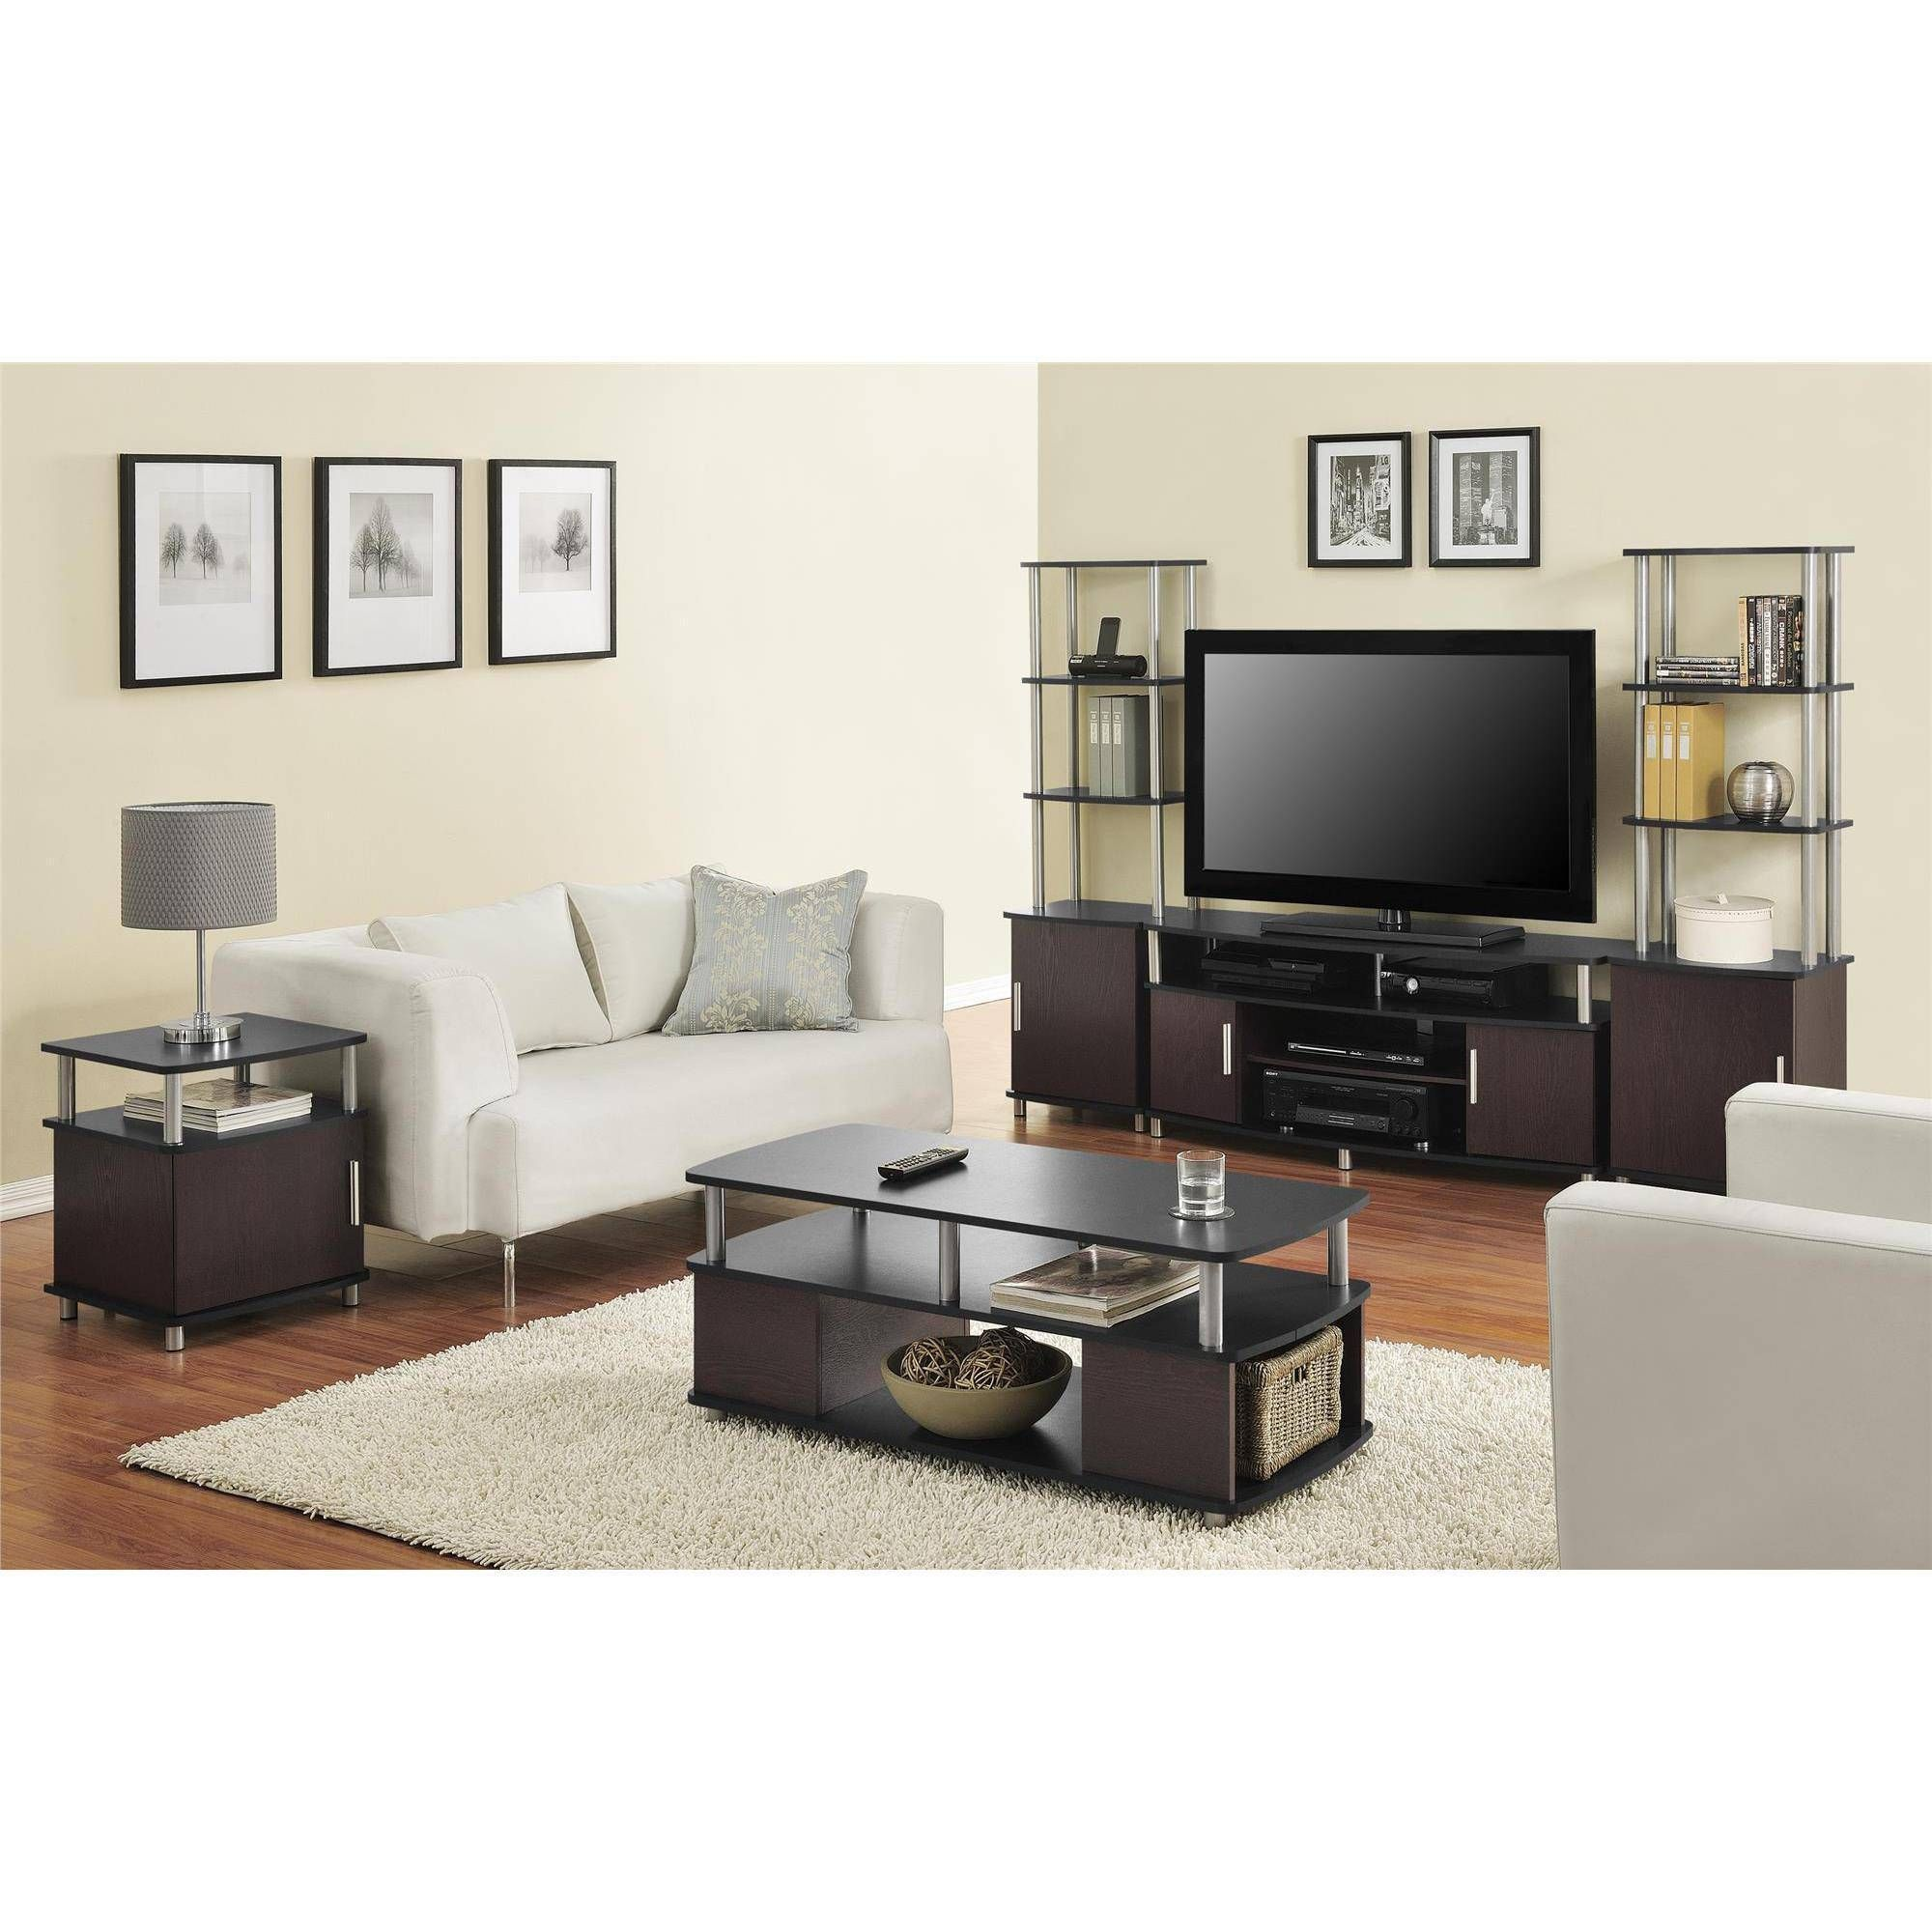 Black Coffee Table And Tv Stand